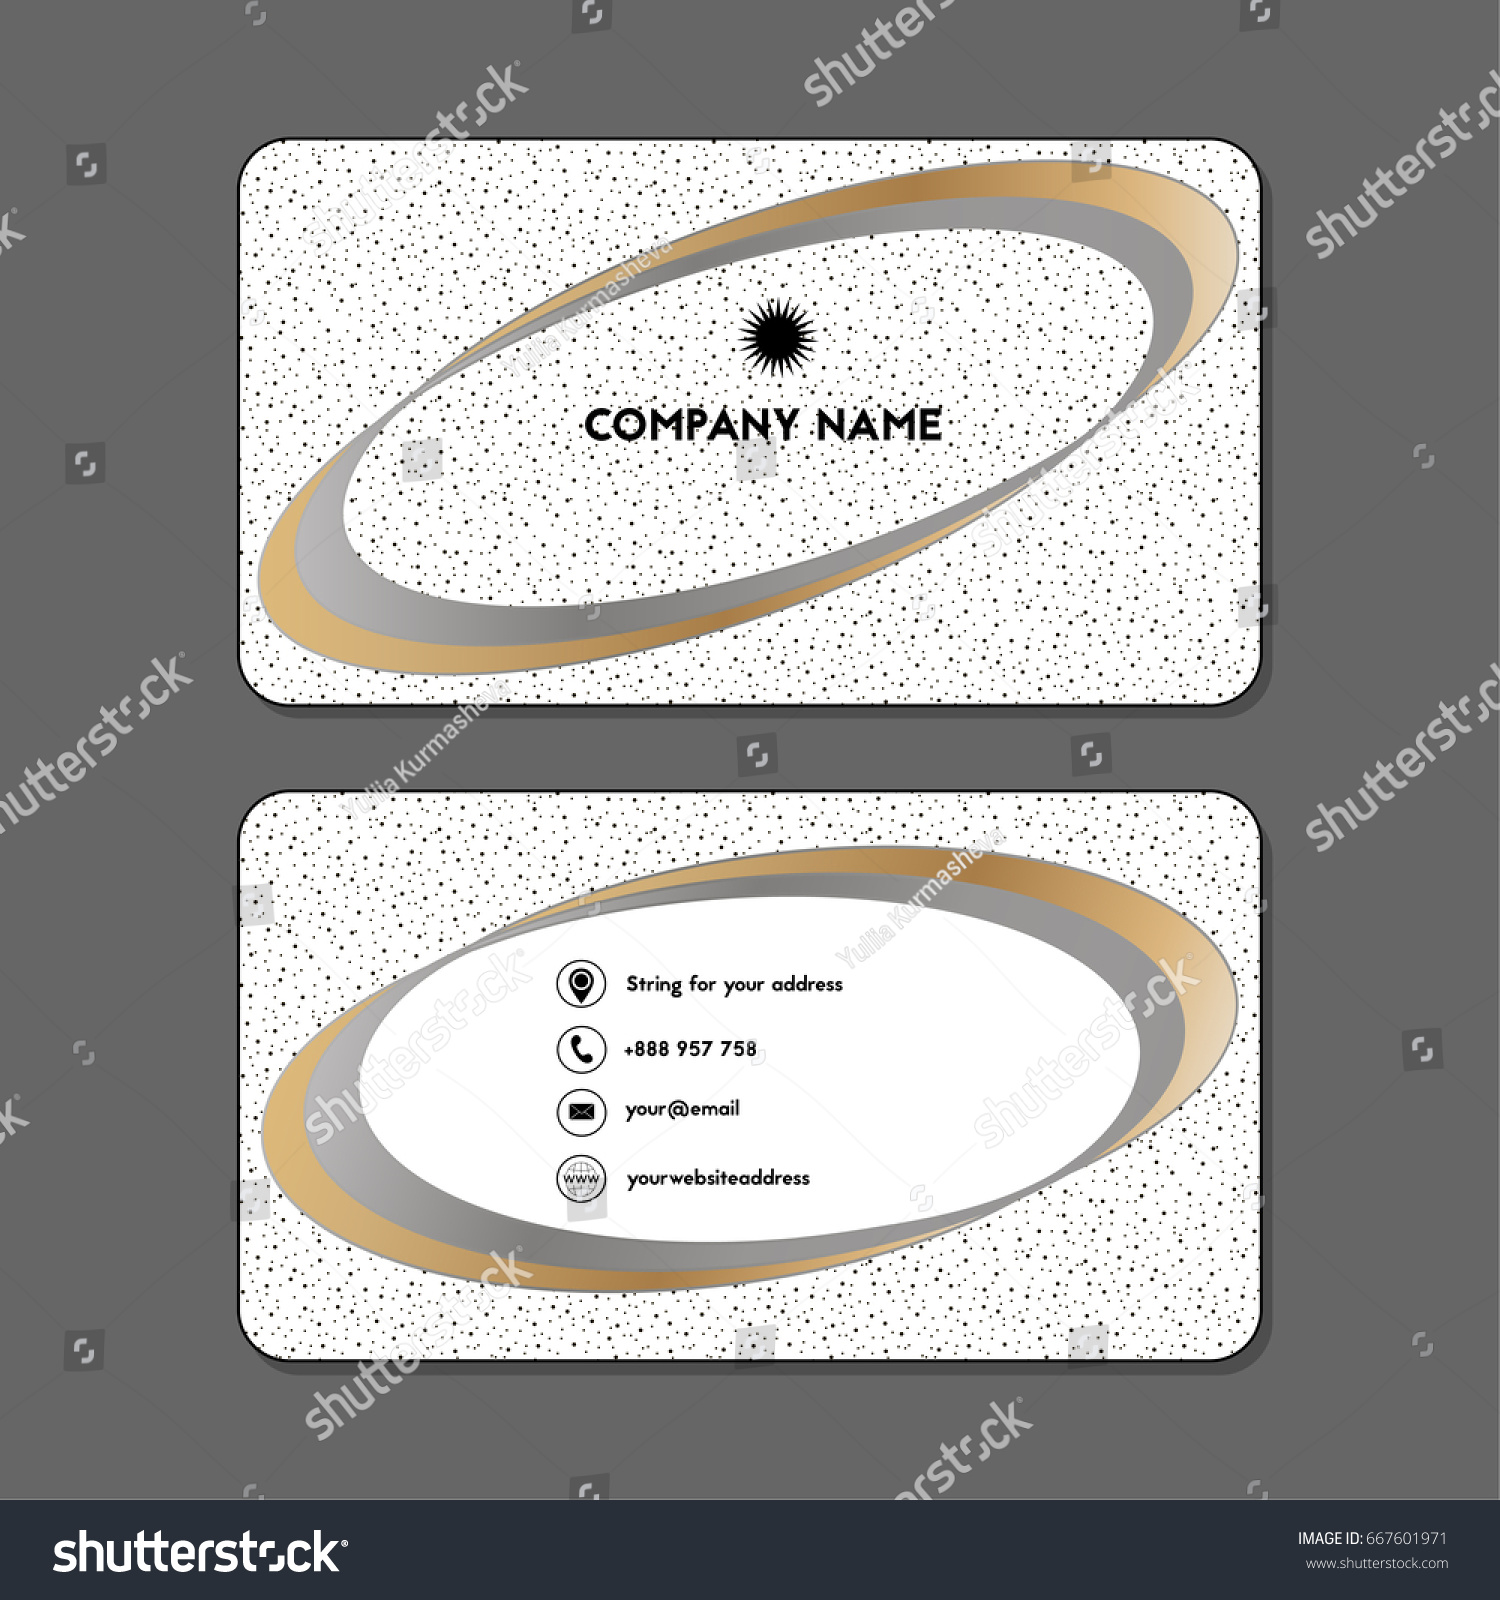 Visiting Card Business Card Ellipse Stock Vector 667601971 ...